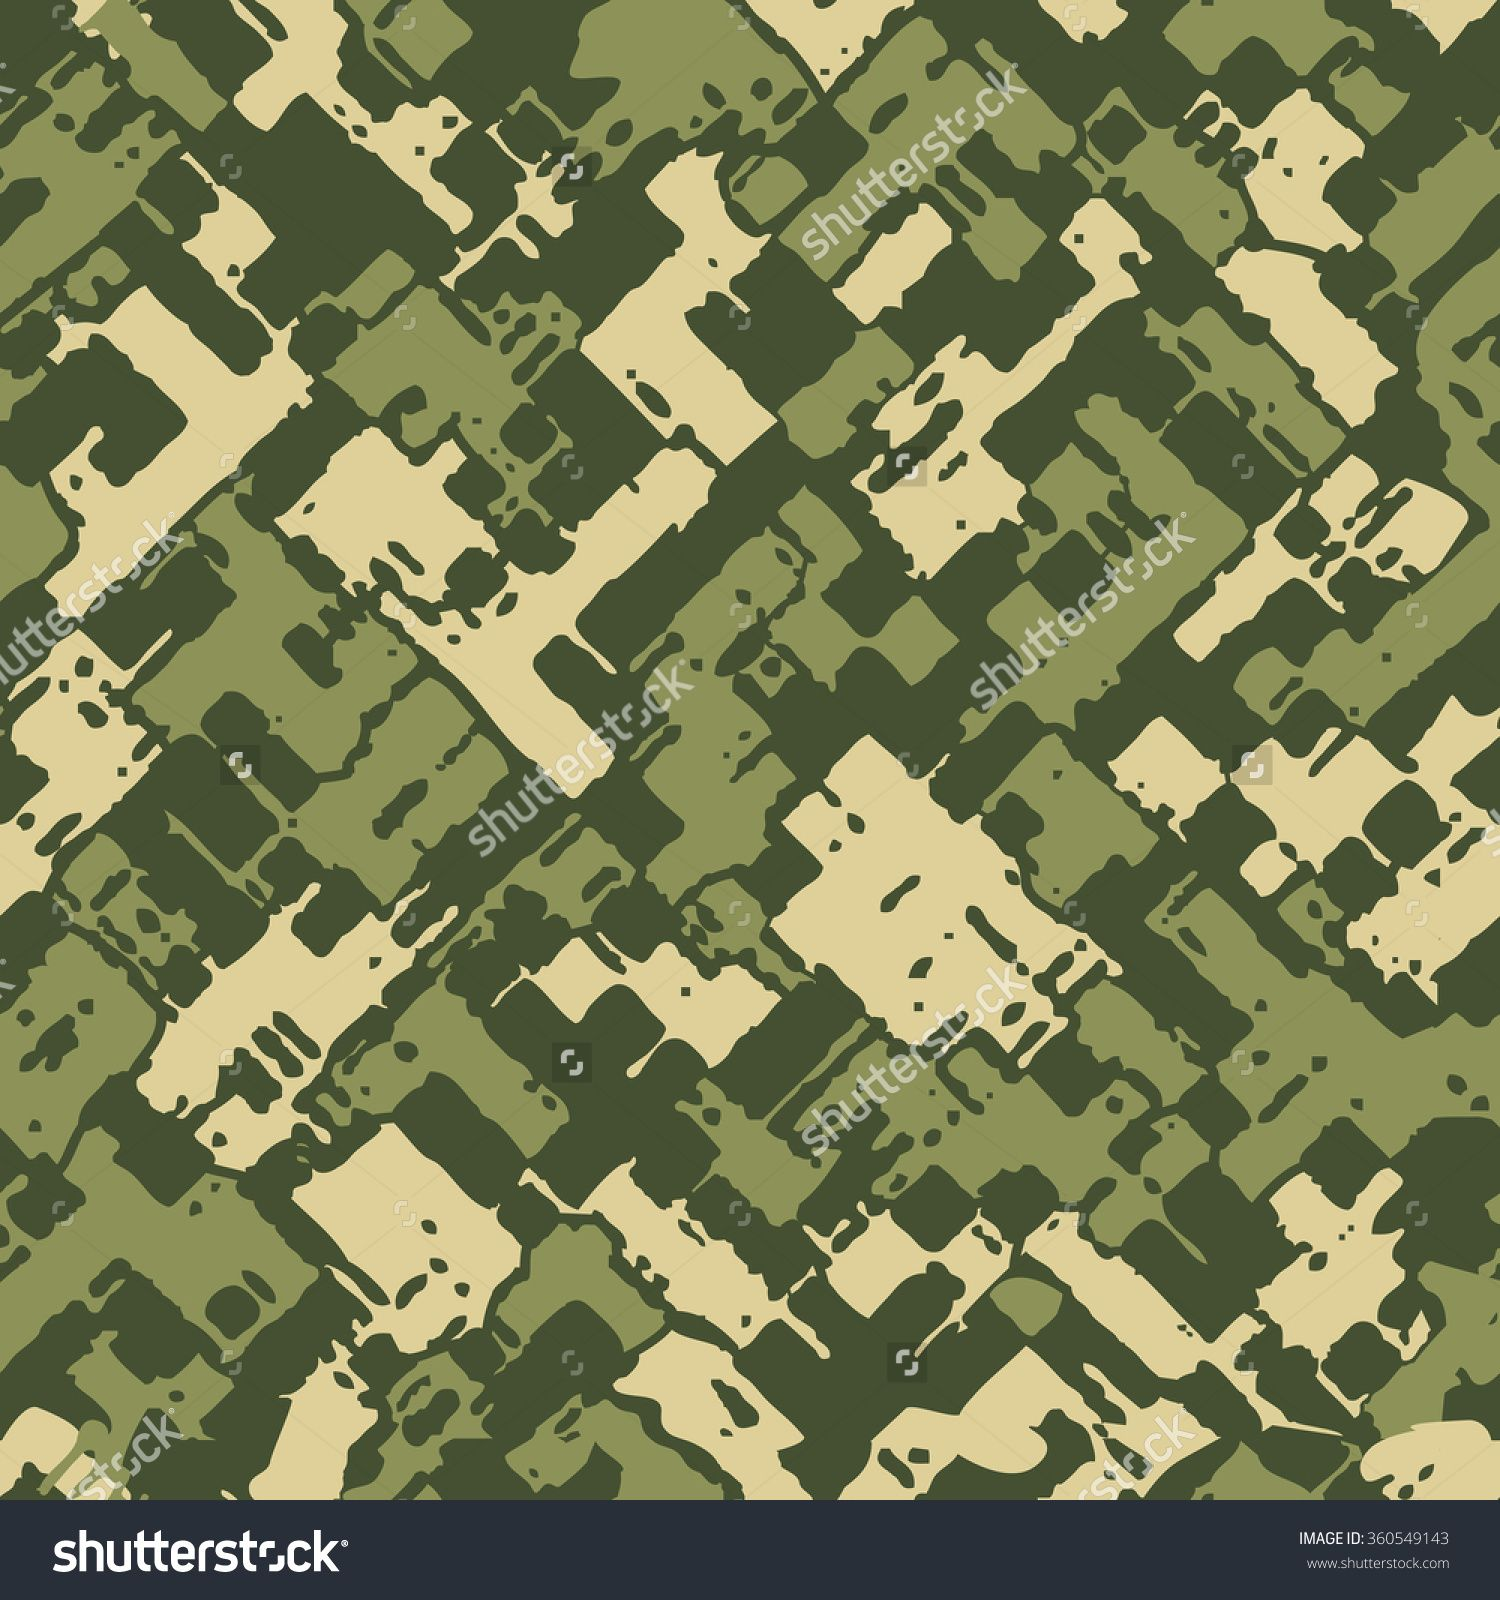 http://image.shutterstock.com/z/stock-vector-camouflage-seamless ...